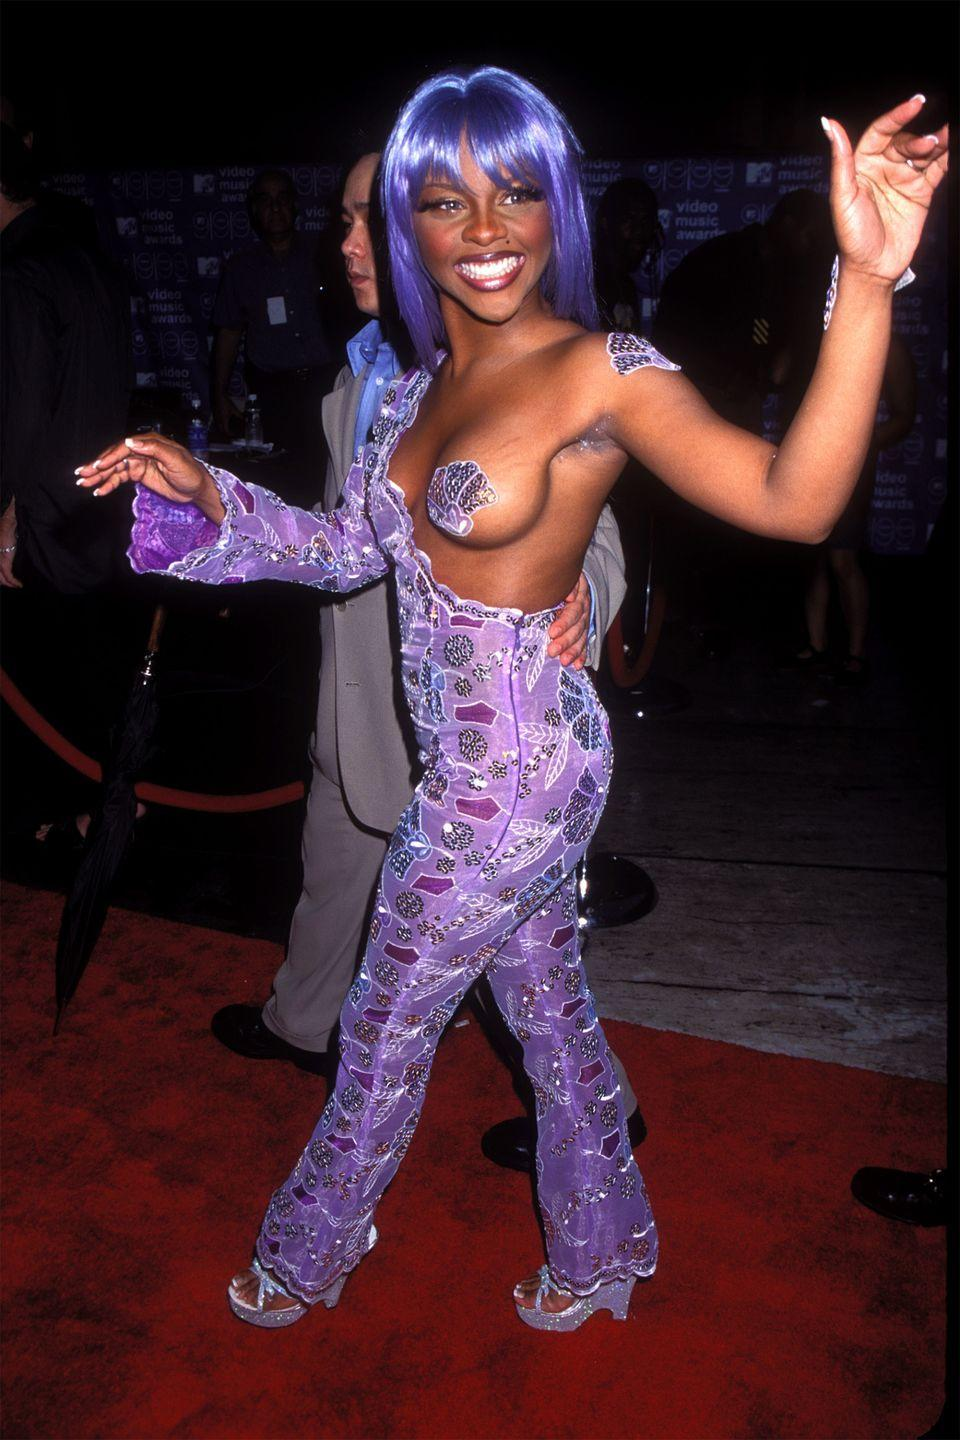 "<p>In an unforgettable red carpet moment, Lil' Kim arrived to the 1999 <a href=""https://www.huffingtonpost.com/2013/07/11/lil-kim-purple-pasty-photos_n_3574366.html"" rel=""nofollow noopener"" target=""_blank"" data-ylk=""slk:MTV Video Music Awards"" class=""link rapid-noclick-resp"">MTV Video Music Awards</a> wearing a mermaid-inspired jumpsuit, complete with a sequin shell pasty. The boob-baring accessory went down in history, and Miley Cyrus even <a href=""https://people.com/celebrity/miley-cyrus-dresses-as-lil-kim-for-halloween/"" rel=""nofollow noopener"" target=""_blank"" data-ylk=""slk:recreated"" class=""link rapid-noclick-resp"">recreated</a> the look for Halloween. </p>"